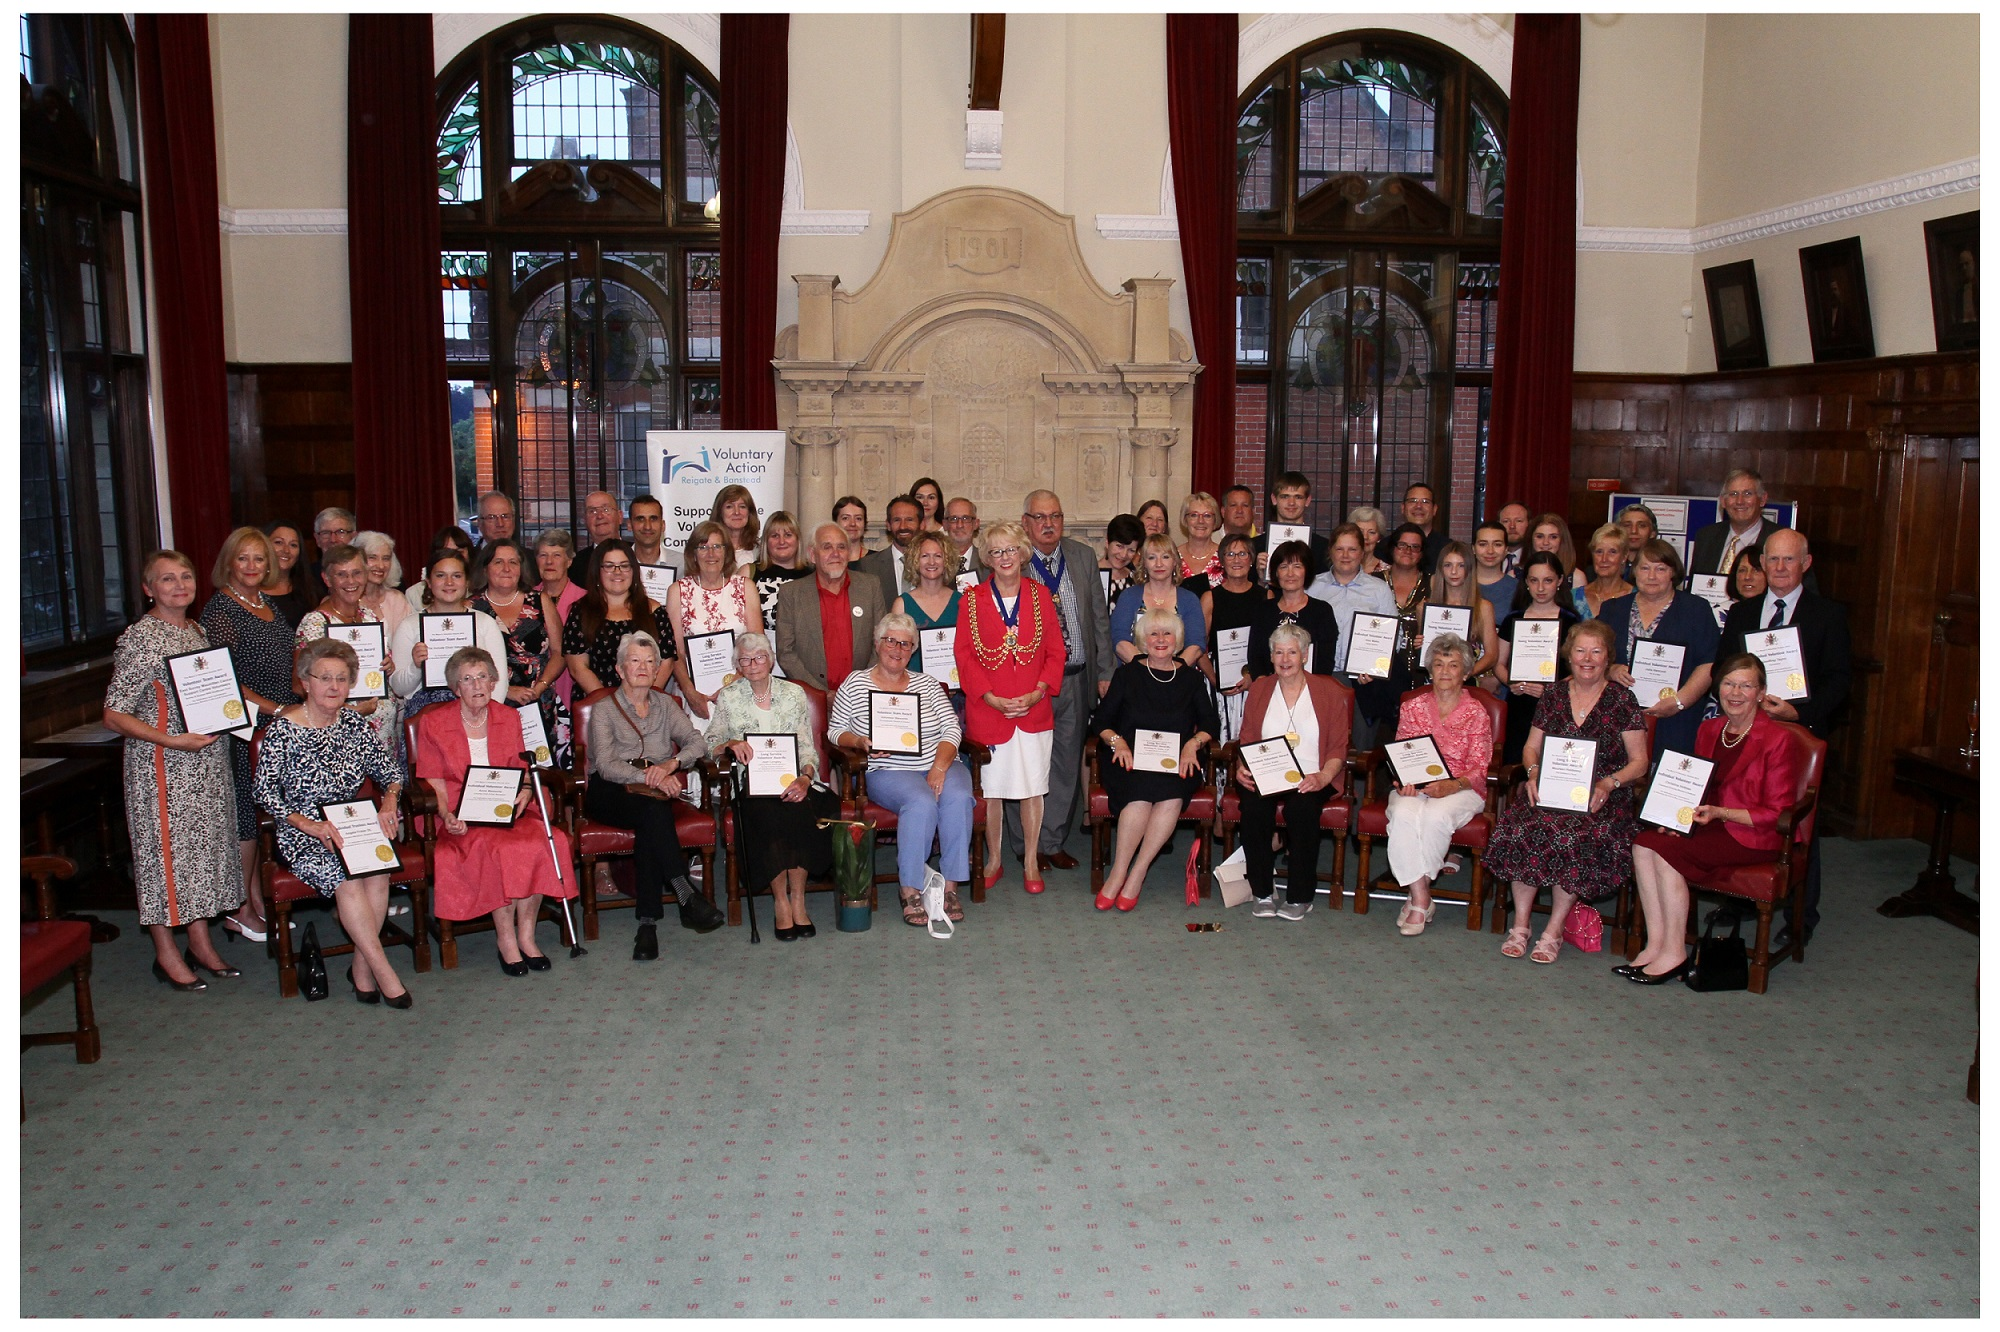 Mayors volunteer award winners 2018